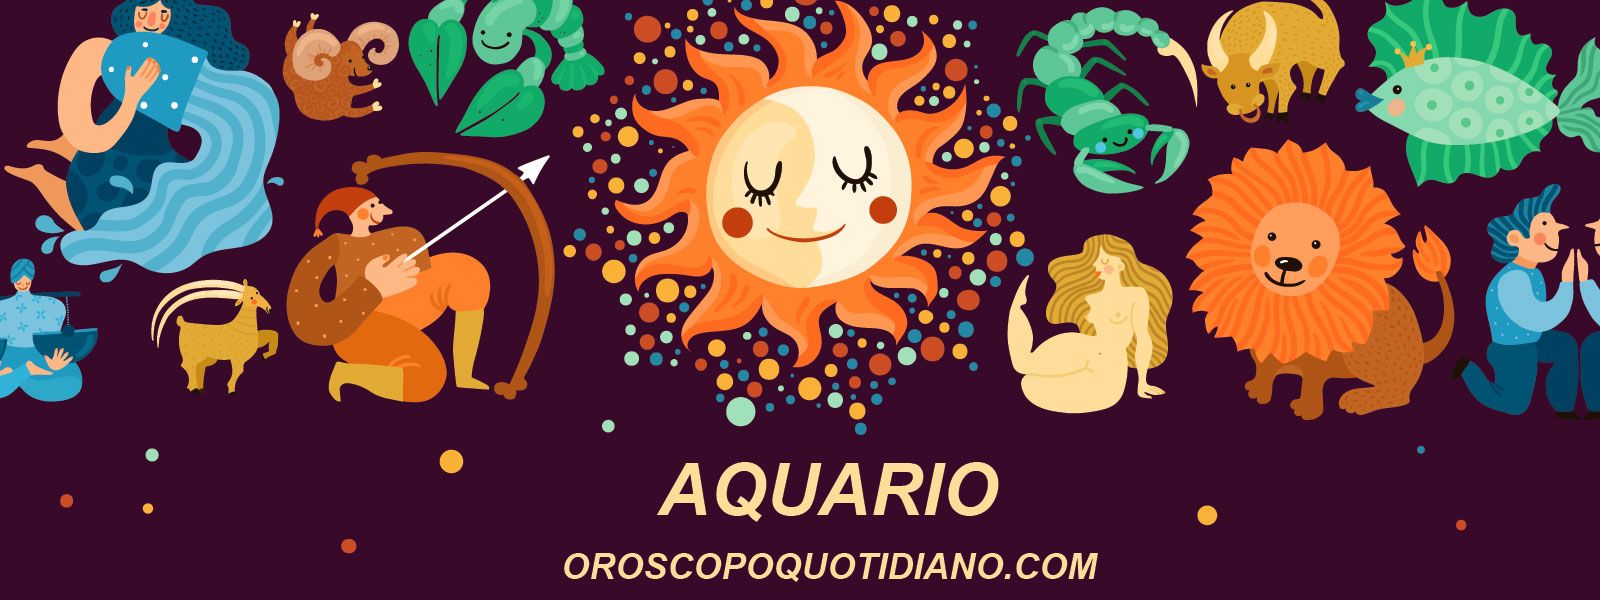 https://oroscopoquotidiano.com/wp-content/uploads/2020/02/Aquario-OroscopoQuotidiano.jpg